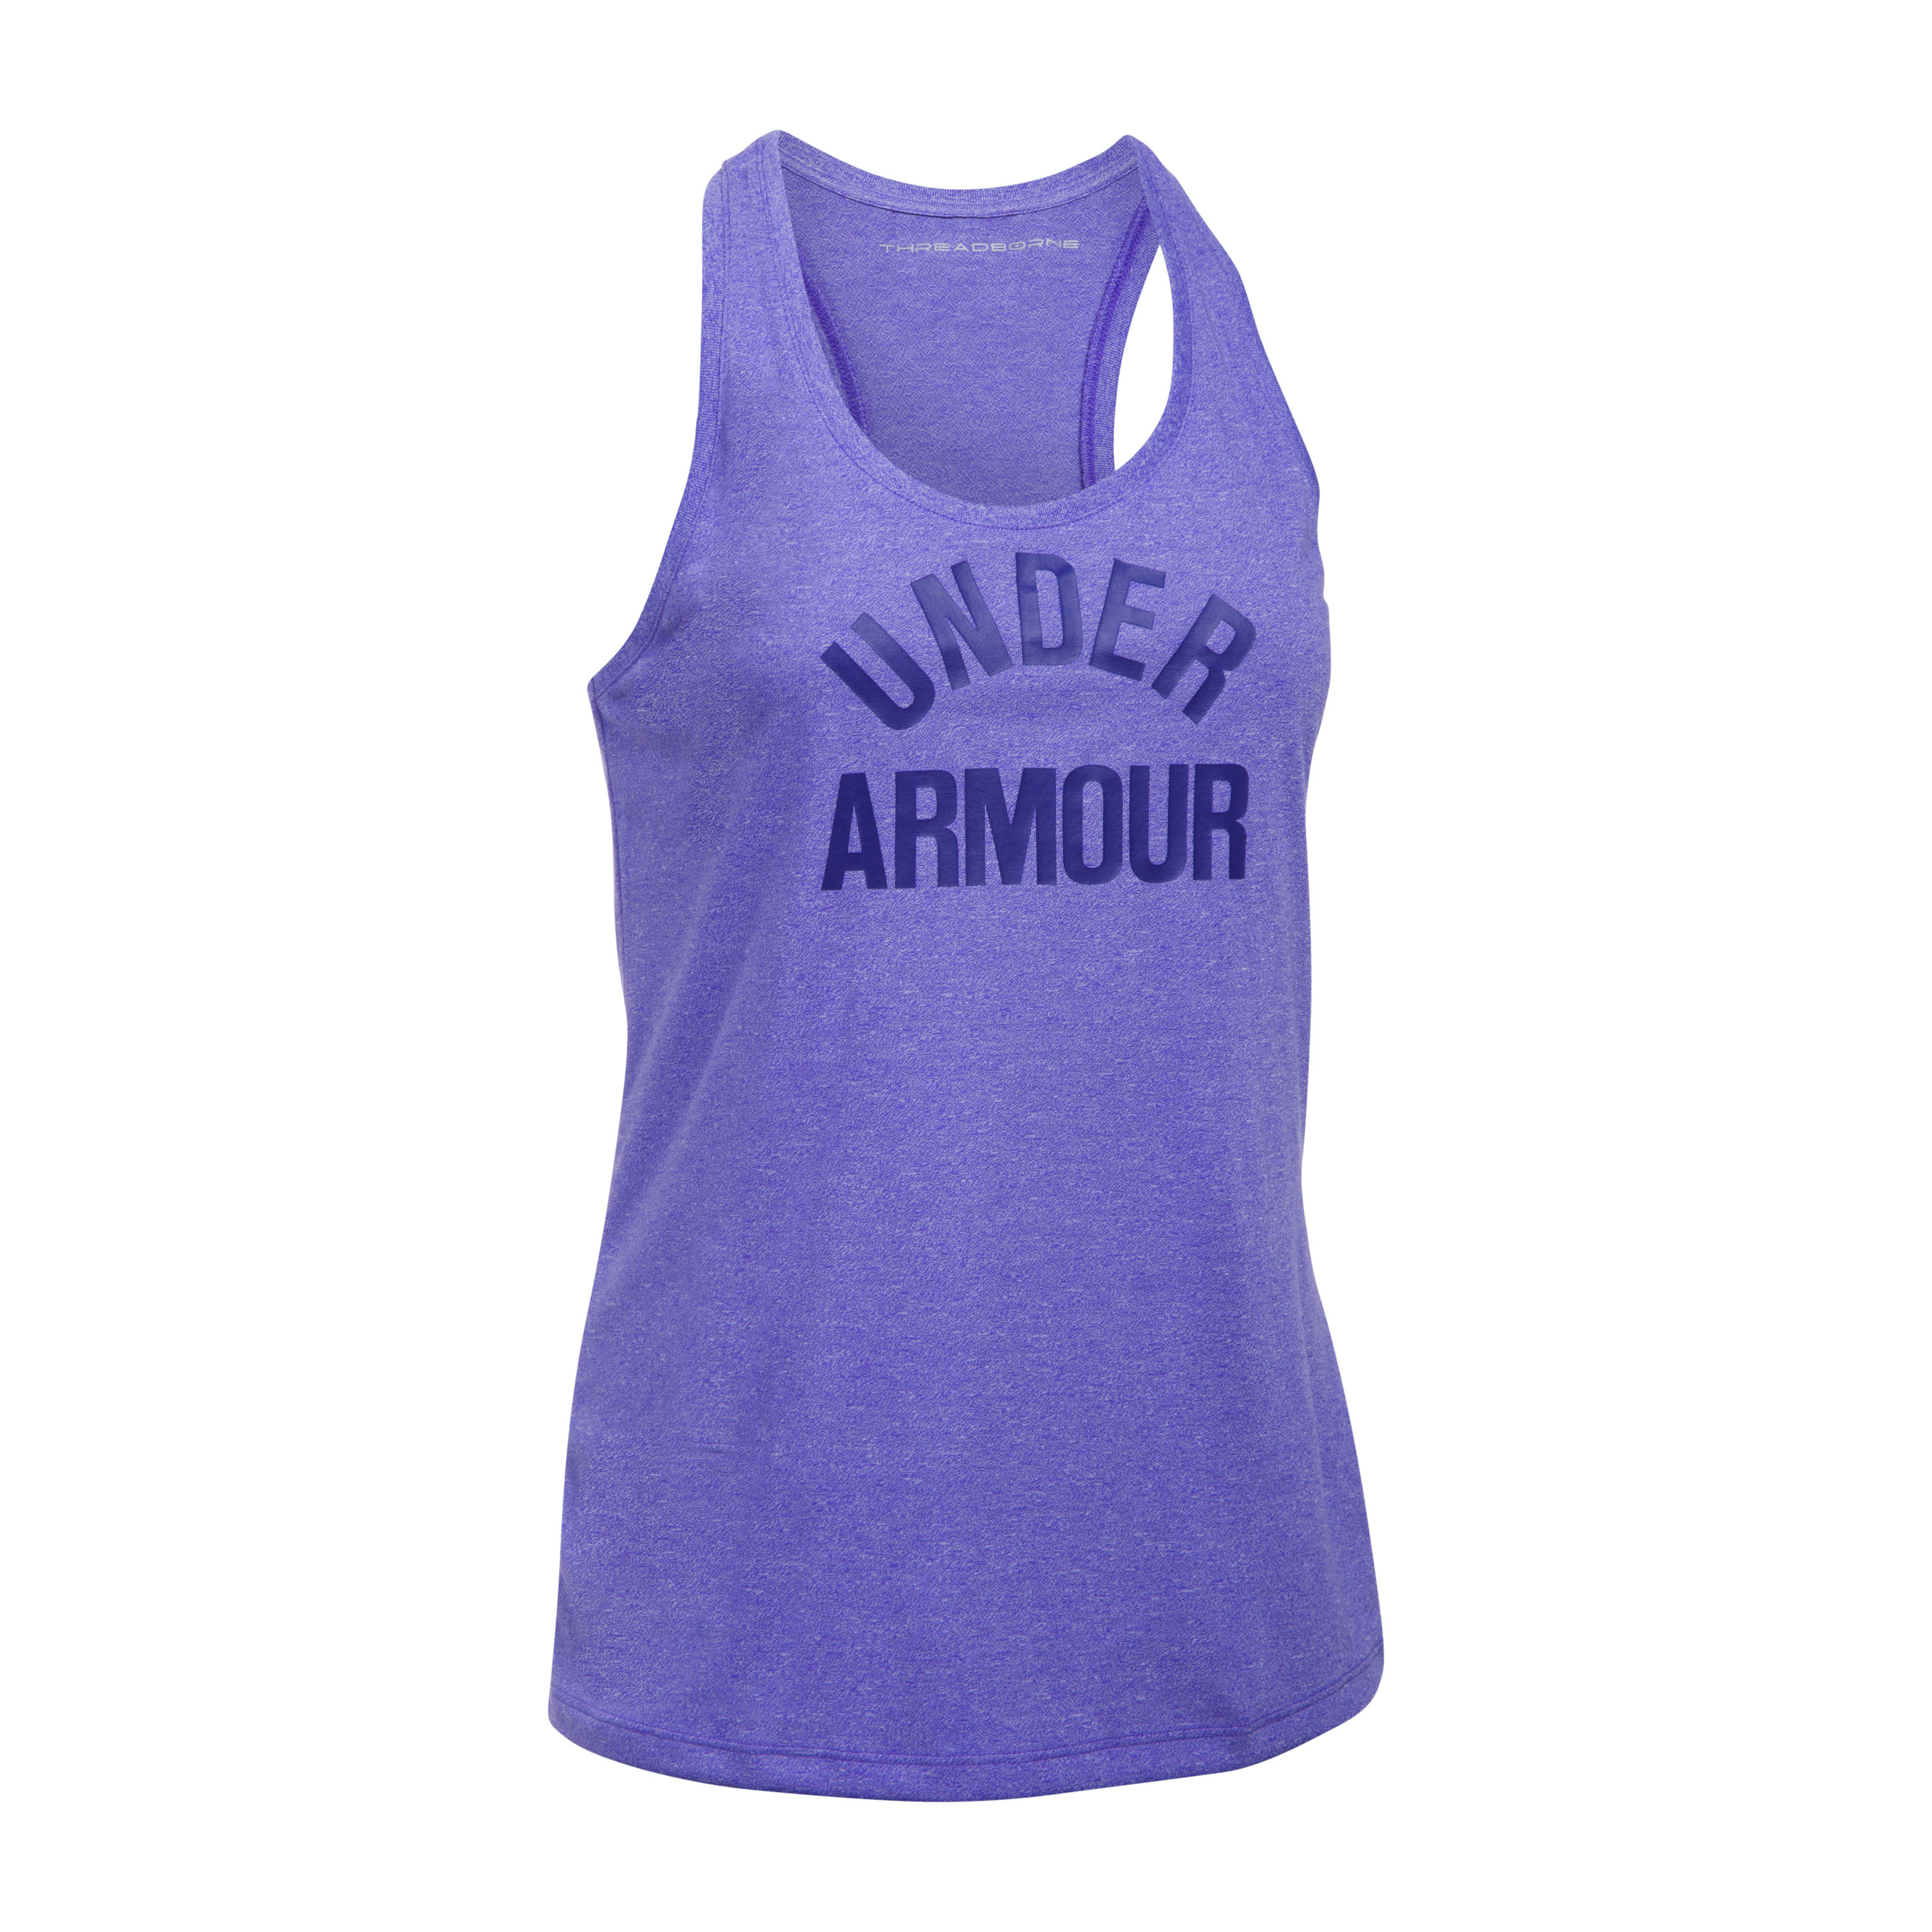 Under Armour Fitness Woman's Threadborne Tank Top purple